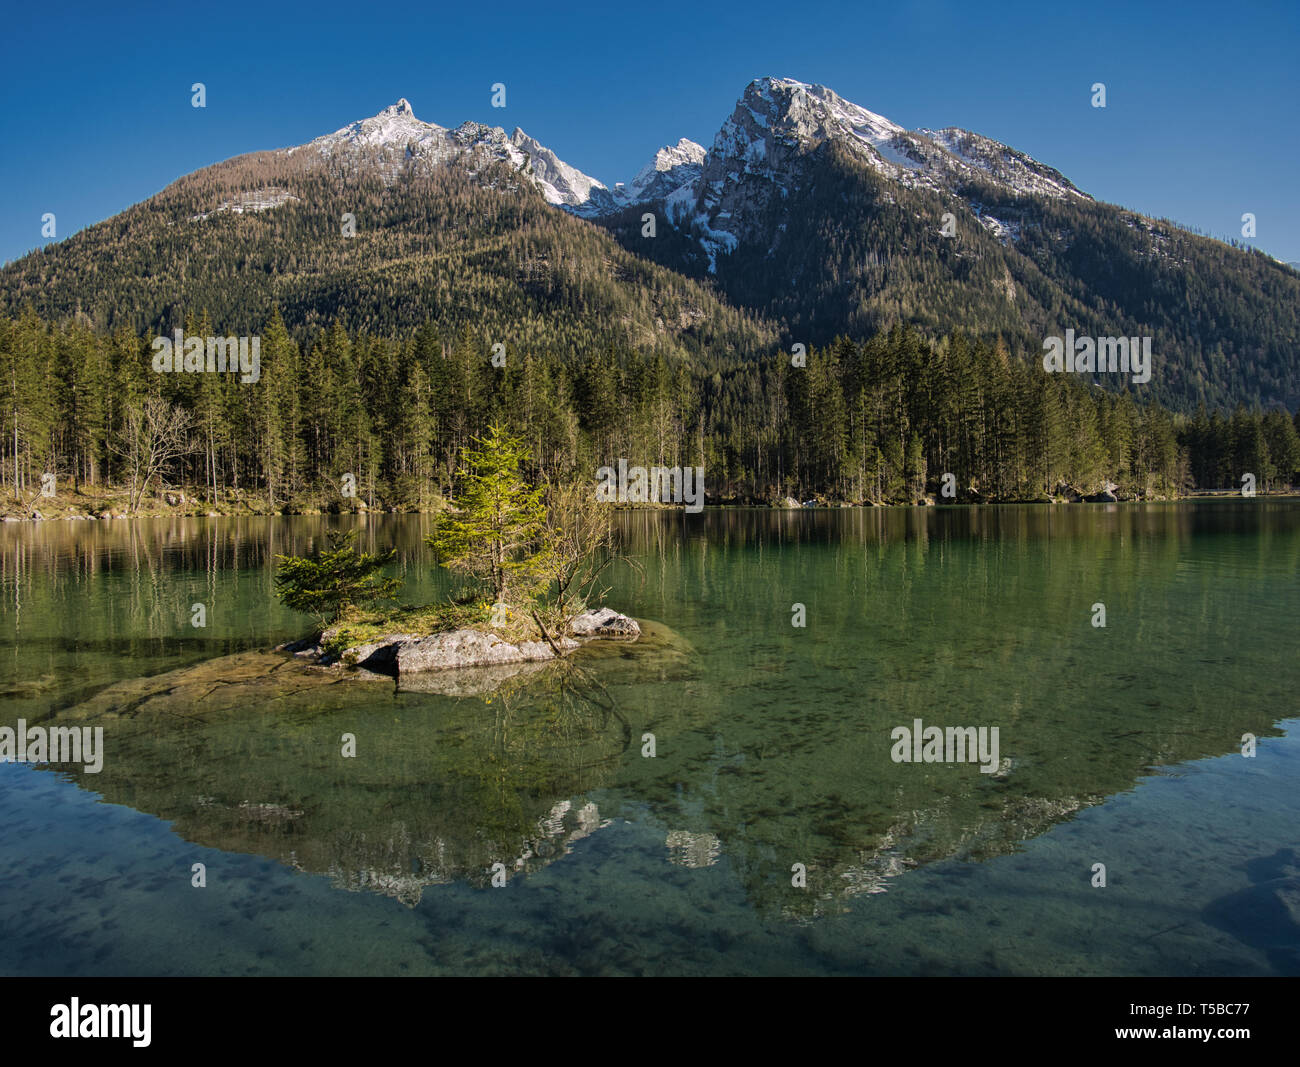 A very small island with flowers and trees in Hintersee - Stock Image